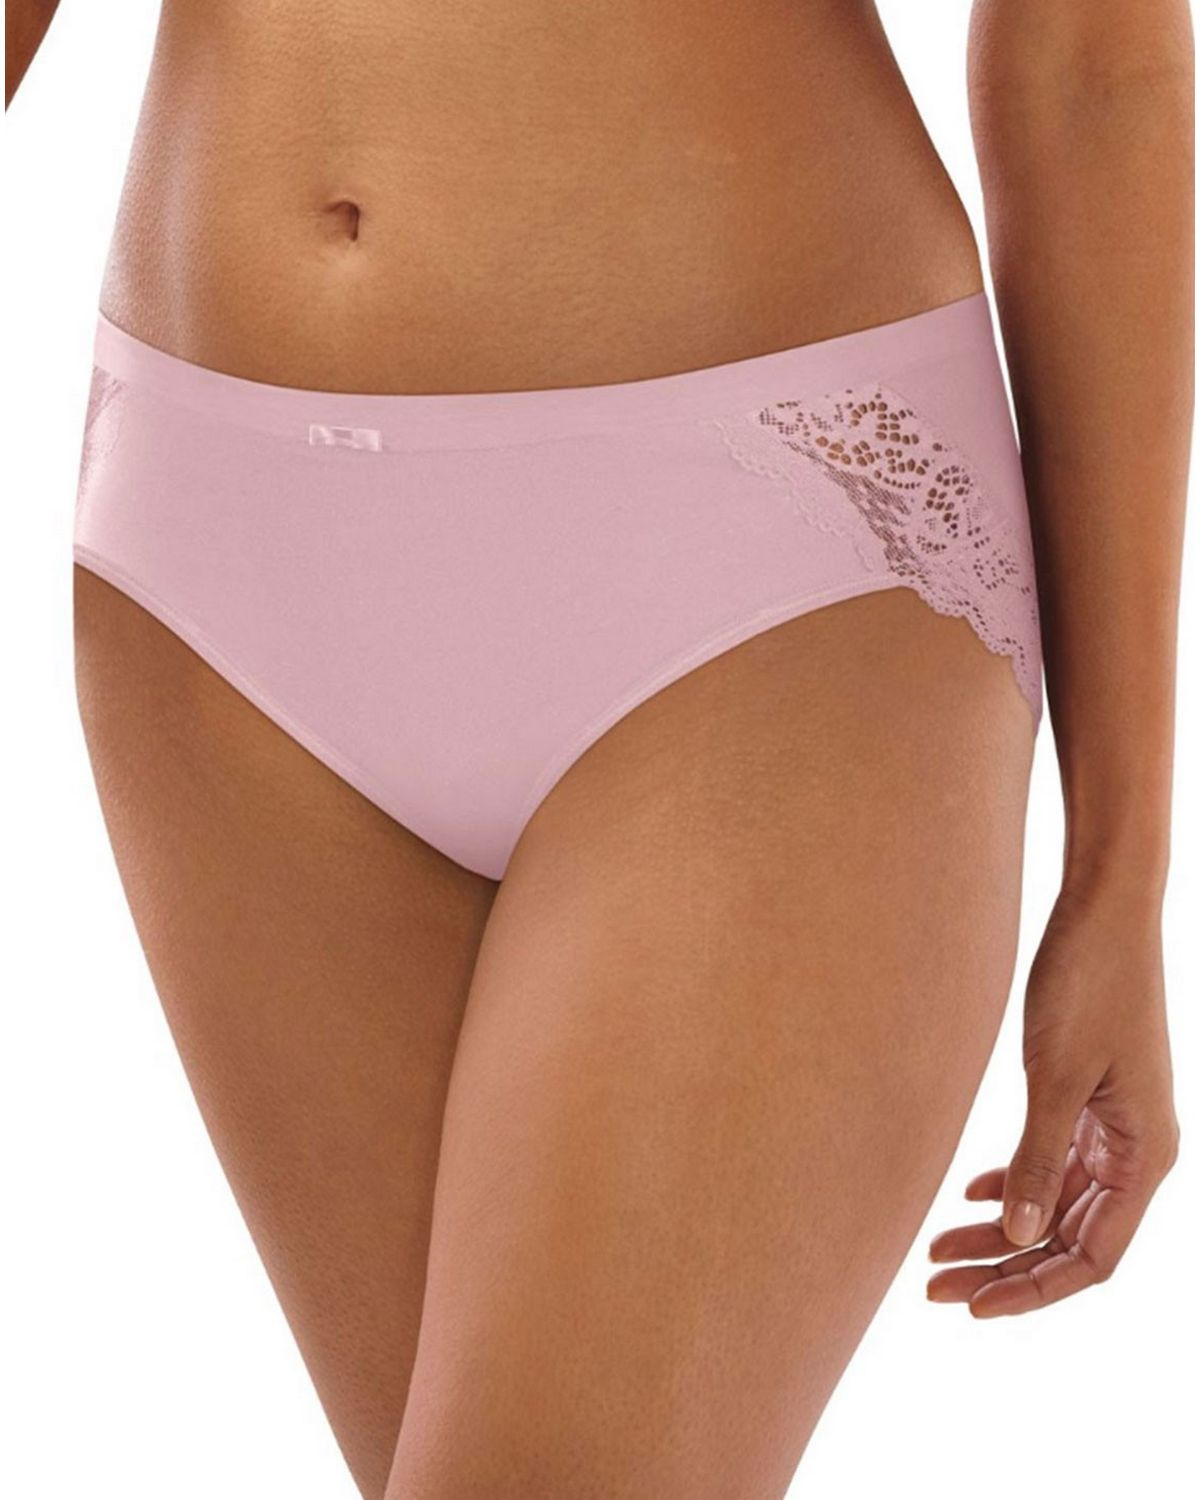 Bali DFCD63 Cotton Hipster Panty - Champagne Shimmer - 9 DFCD63